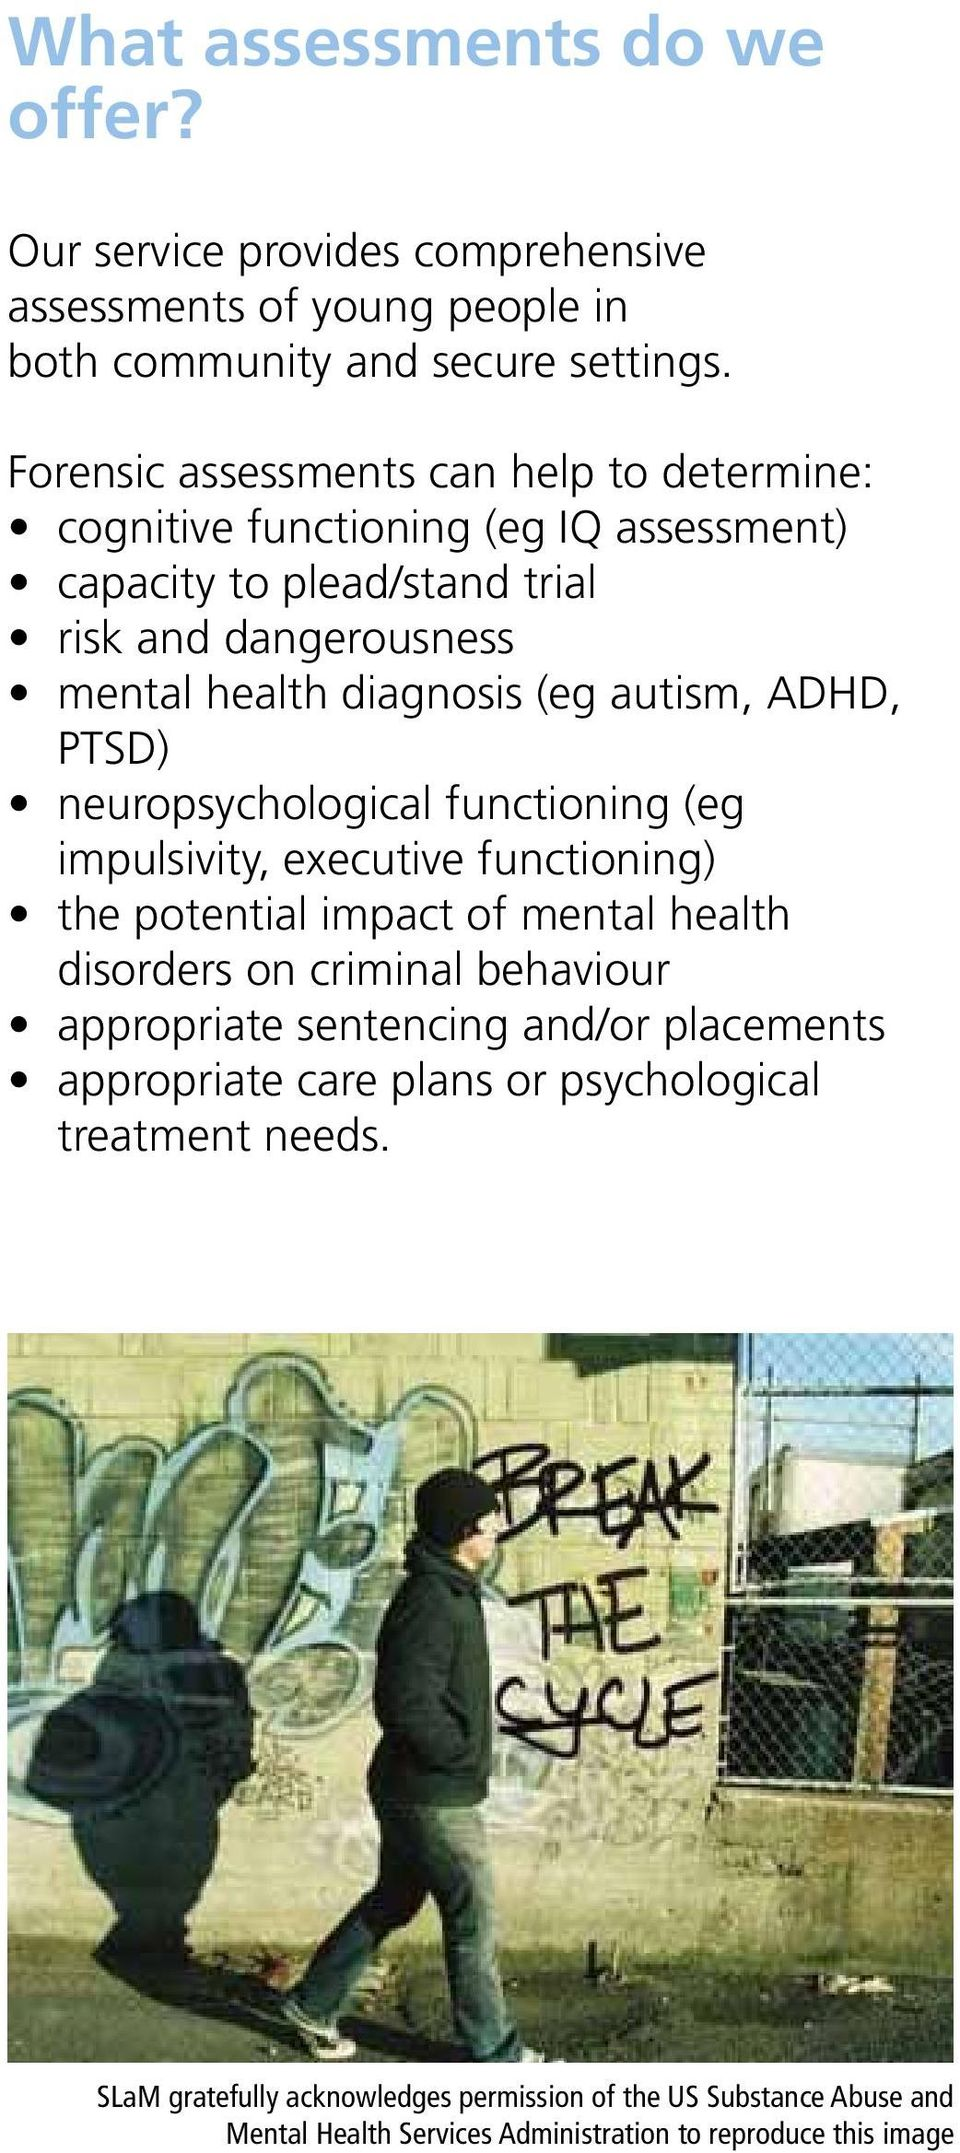 autism, ADHD, PTSD) neuropsychological functioning (eg impulsivity, executive functioning) the potential impact of mental health disorders on criminal behaviour